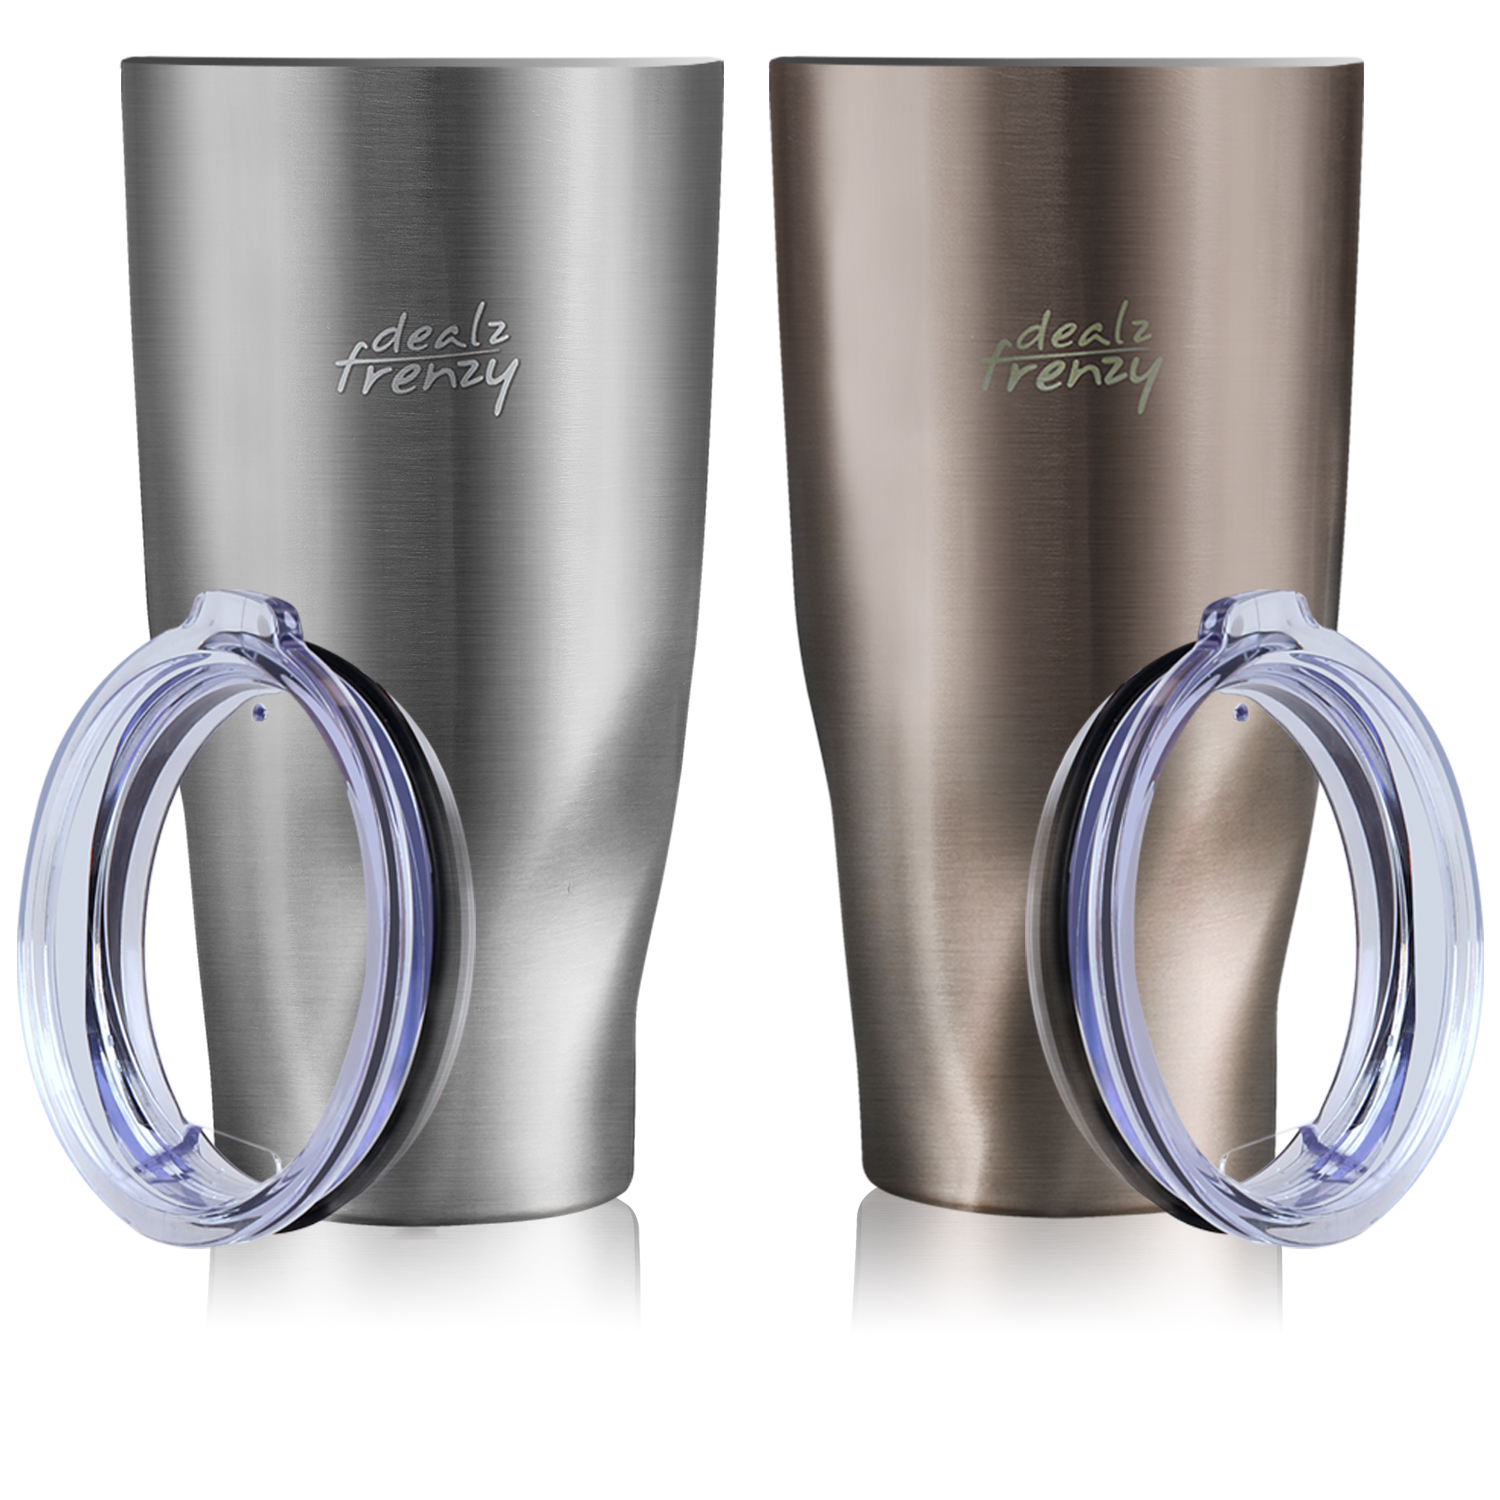 New Year, New Deals! Insulated Tumbler-Double Wall Stainless Steel Wide Mouth , Only $16.99